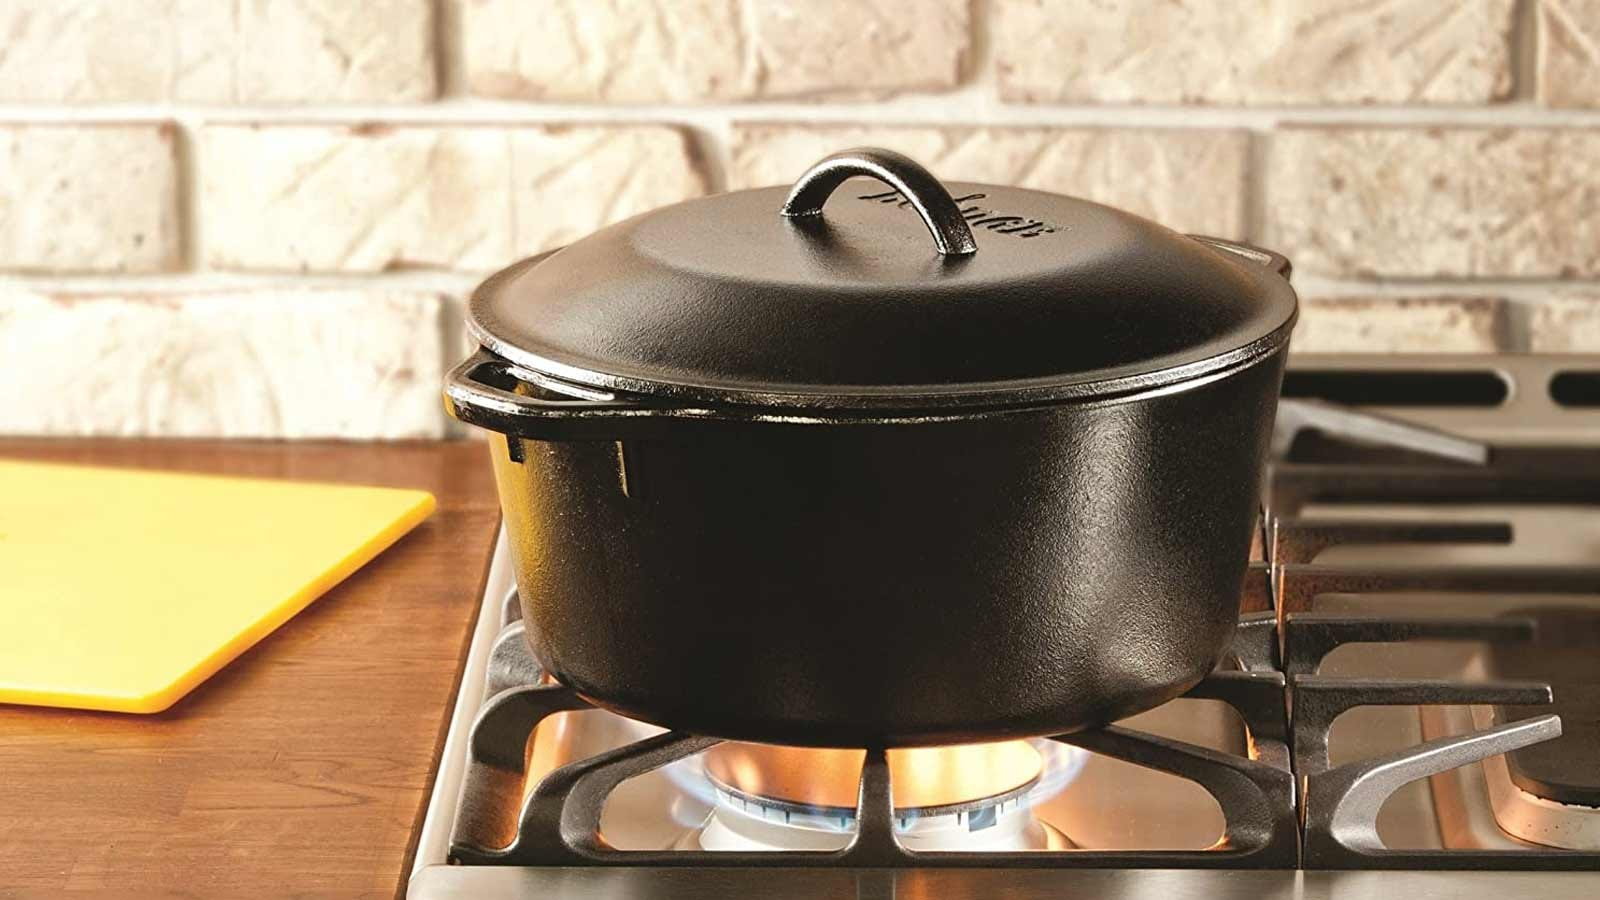 A Lodge cast-iron Dutch oven with a loop handle lid.